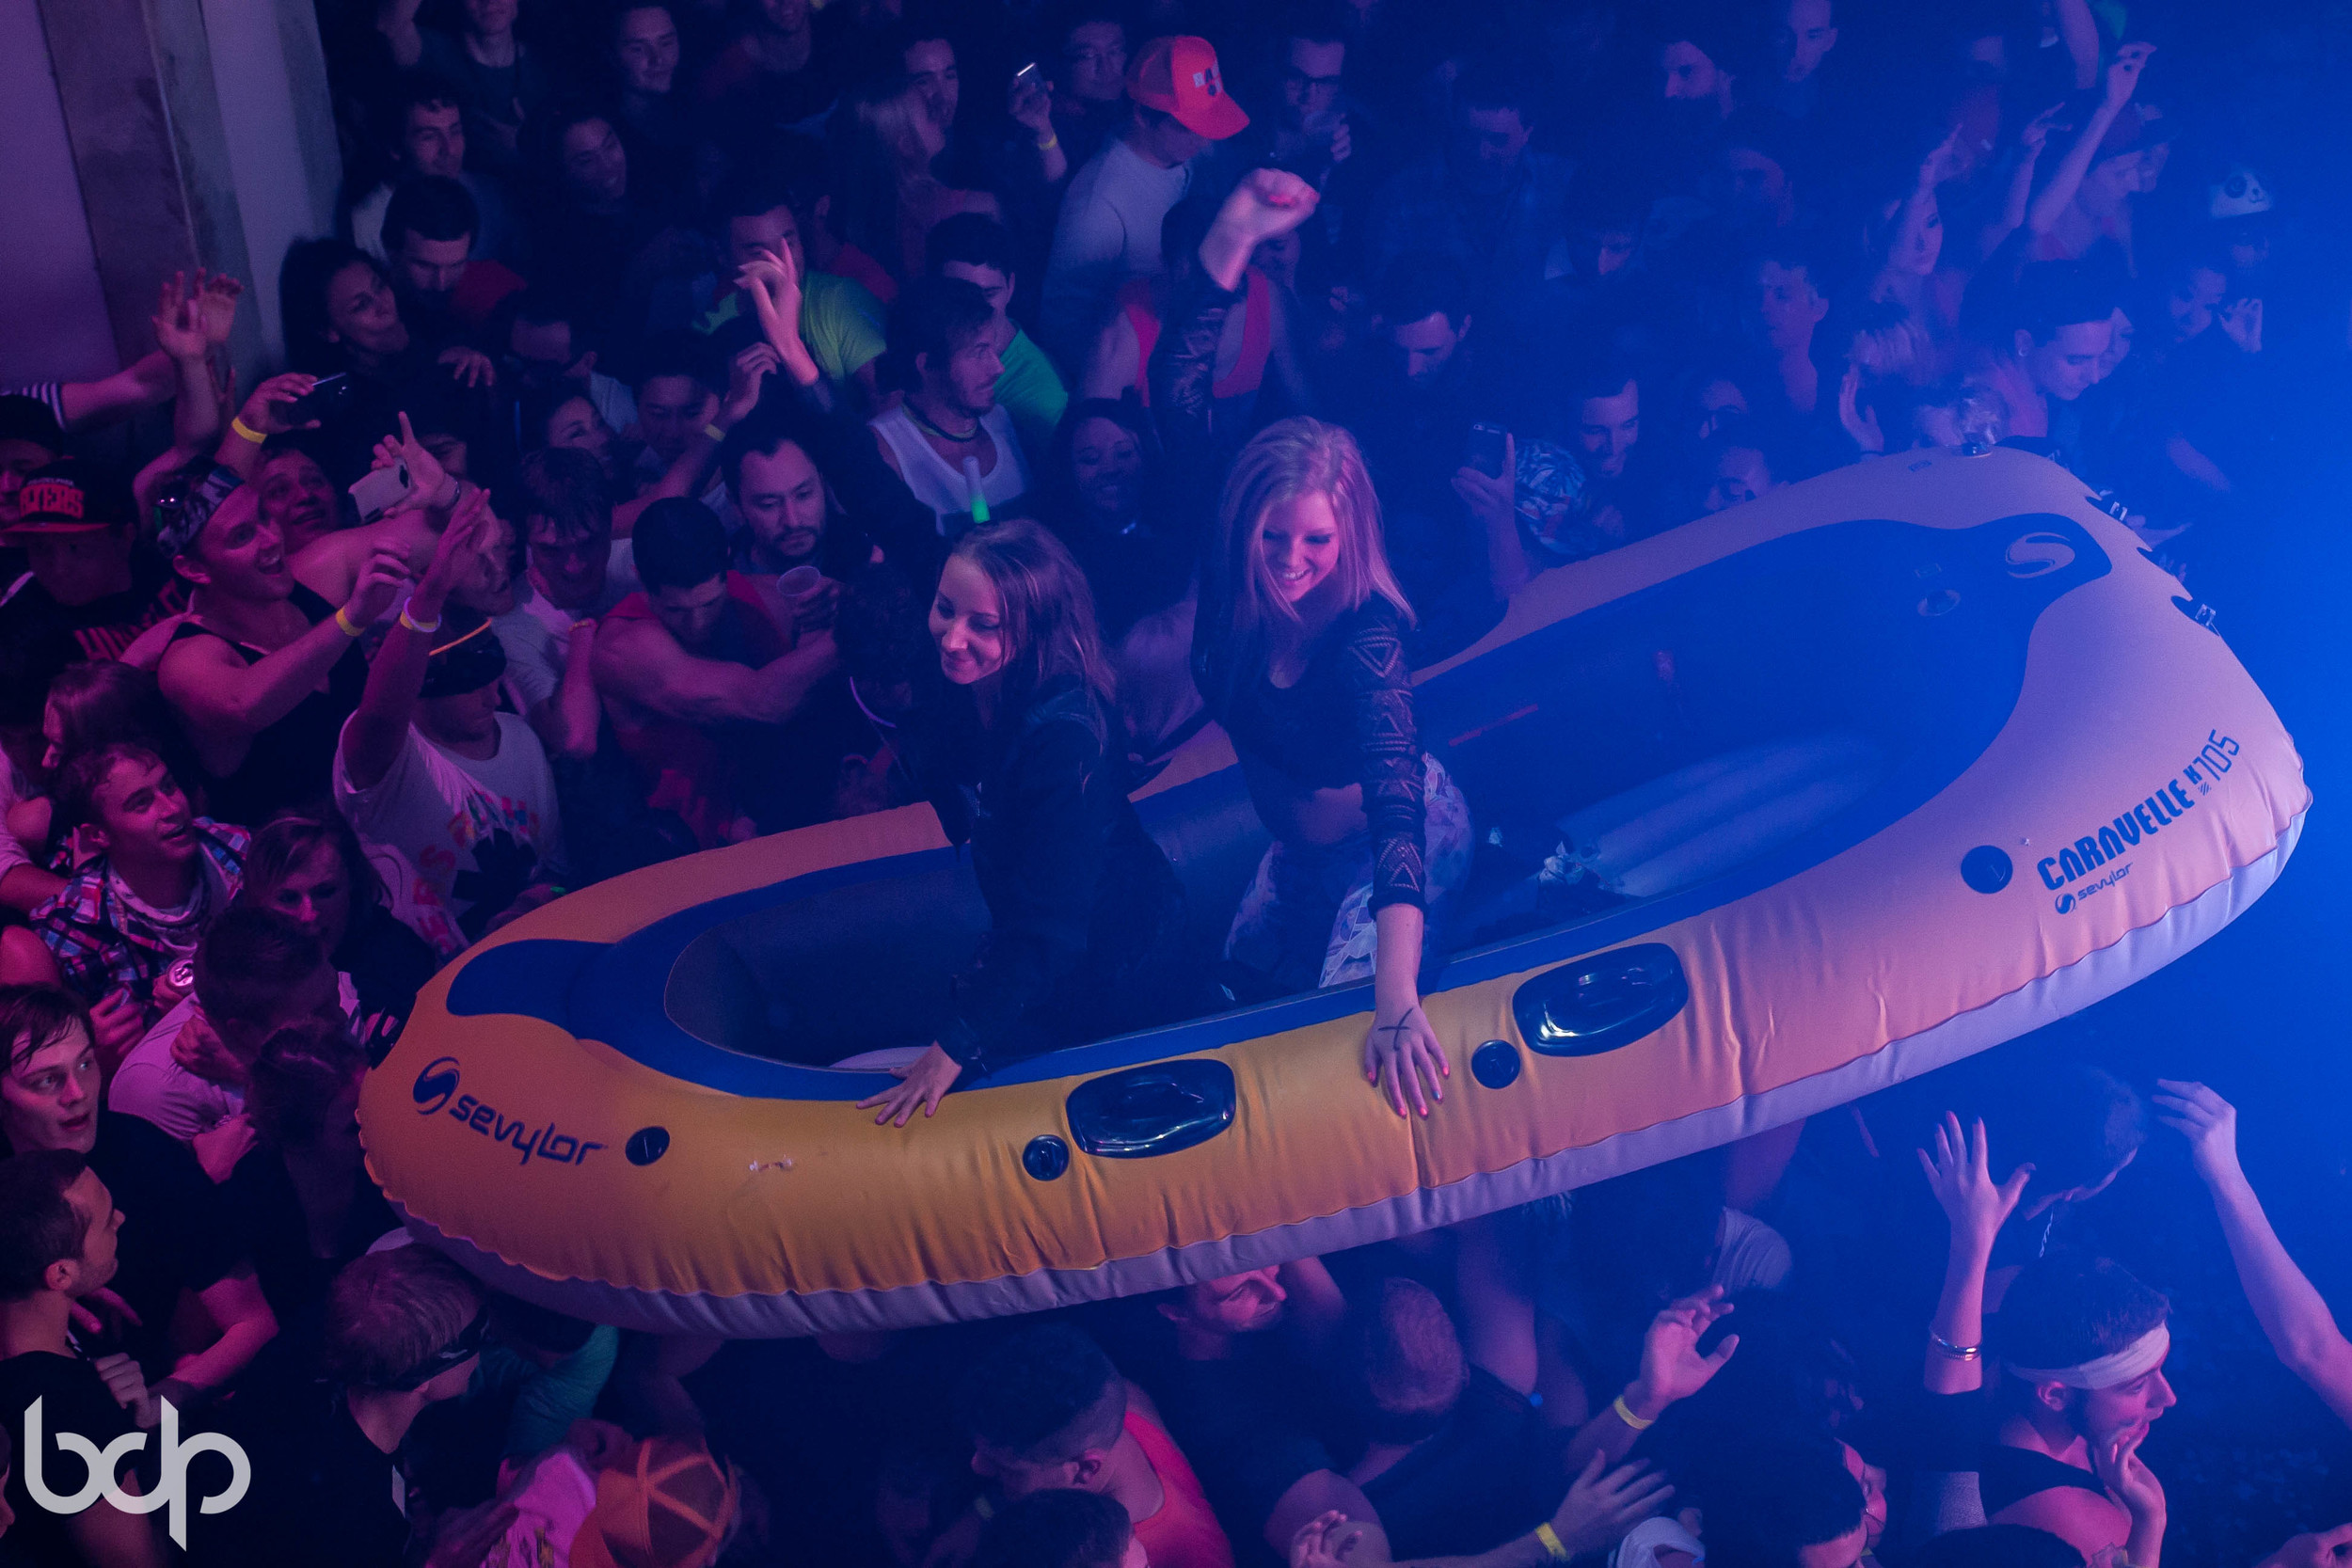 Aokify America Tour at Epic at Epic 110913 BDP-26.jpg